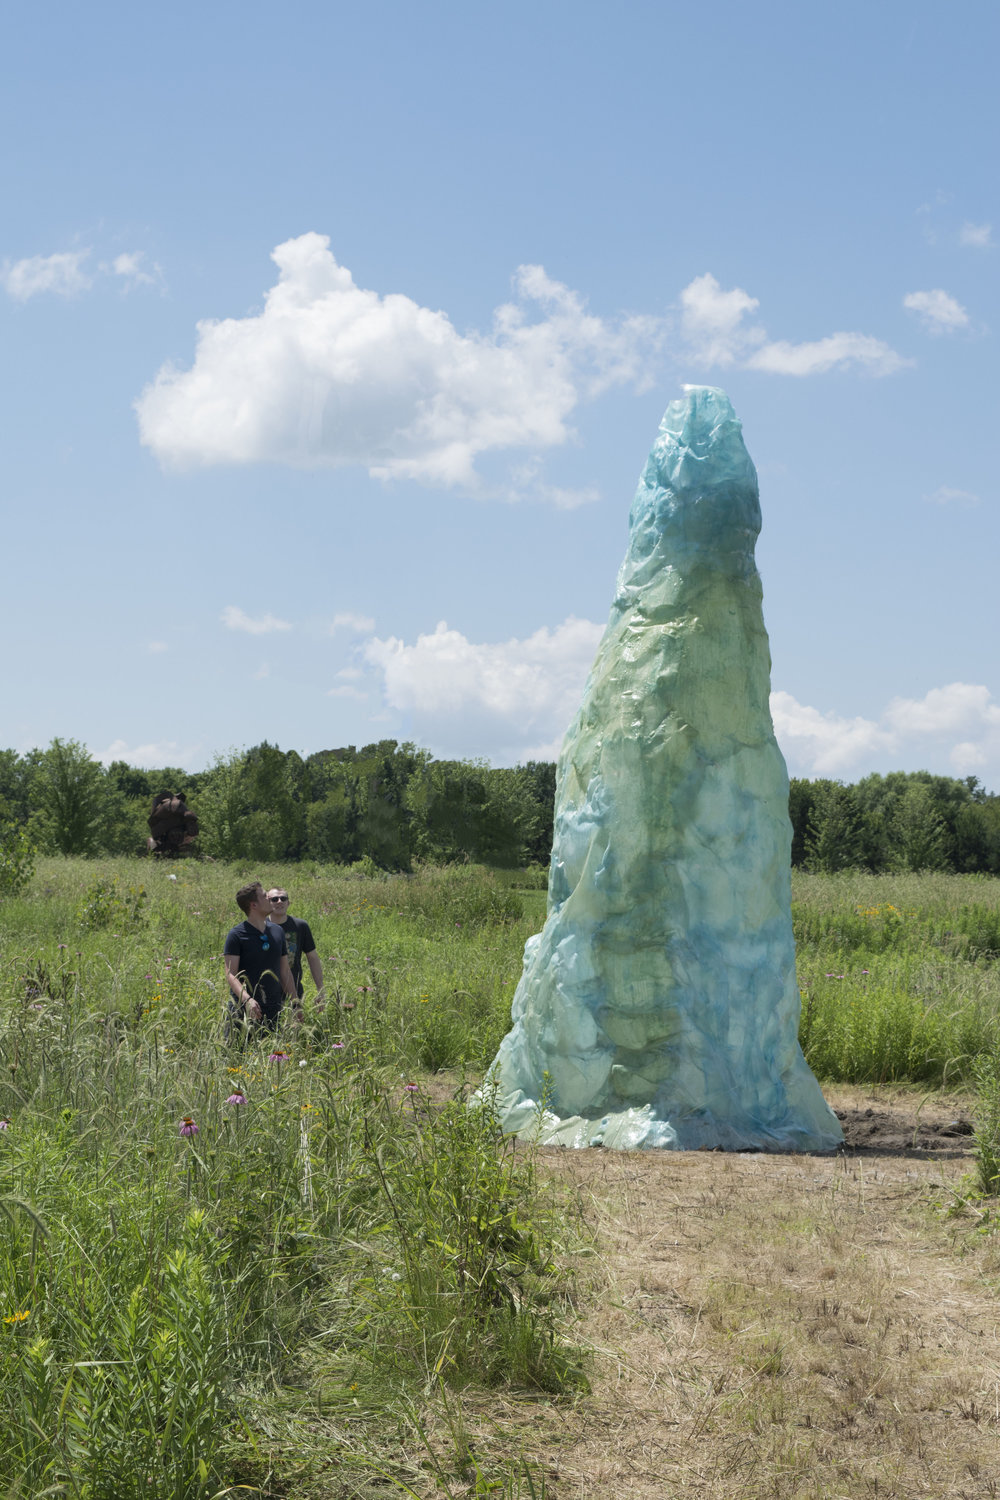 Vortex , resin and fiberglass, 20 x 12 x 12 feet, Franconia Sculpture Park, Minnesota, 2018.